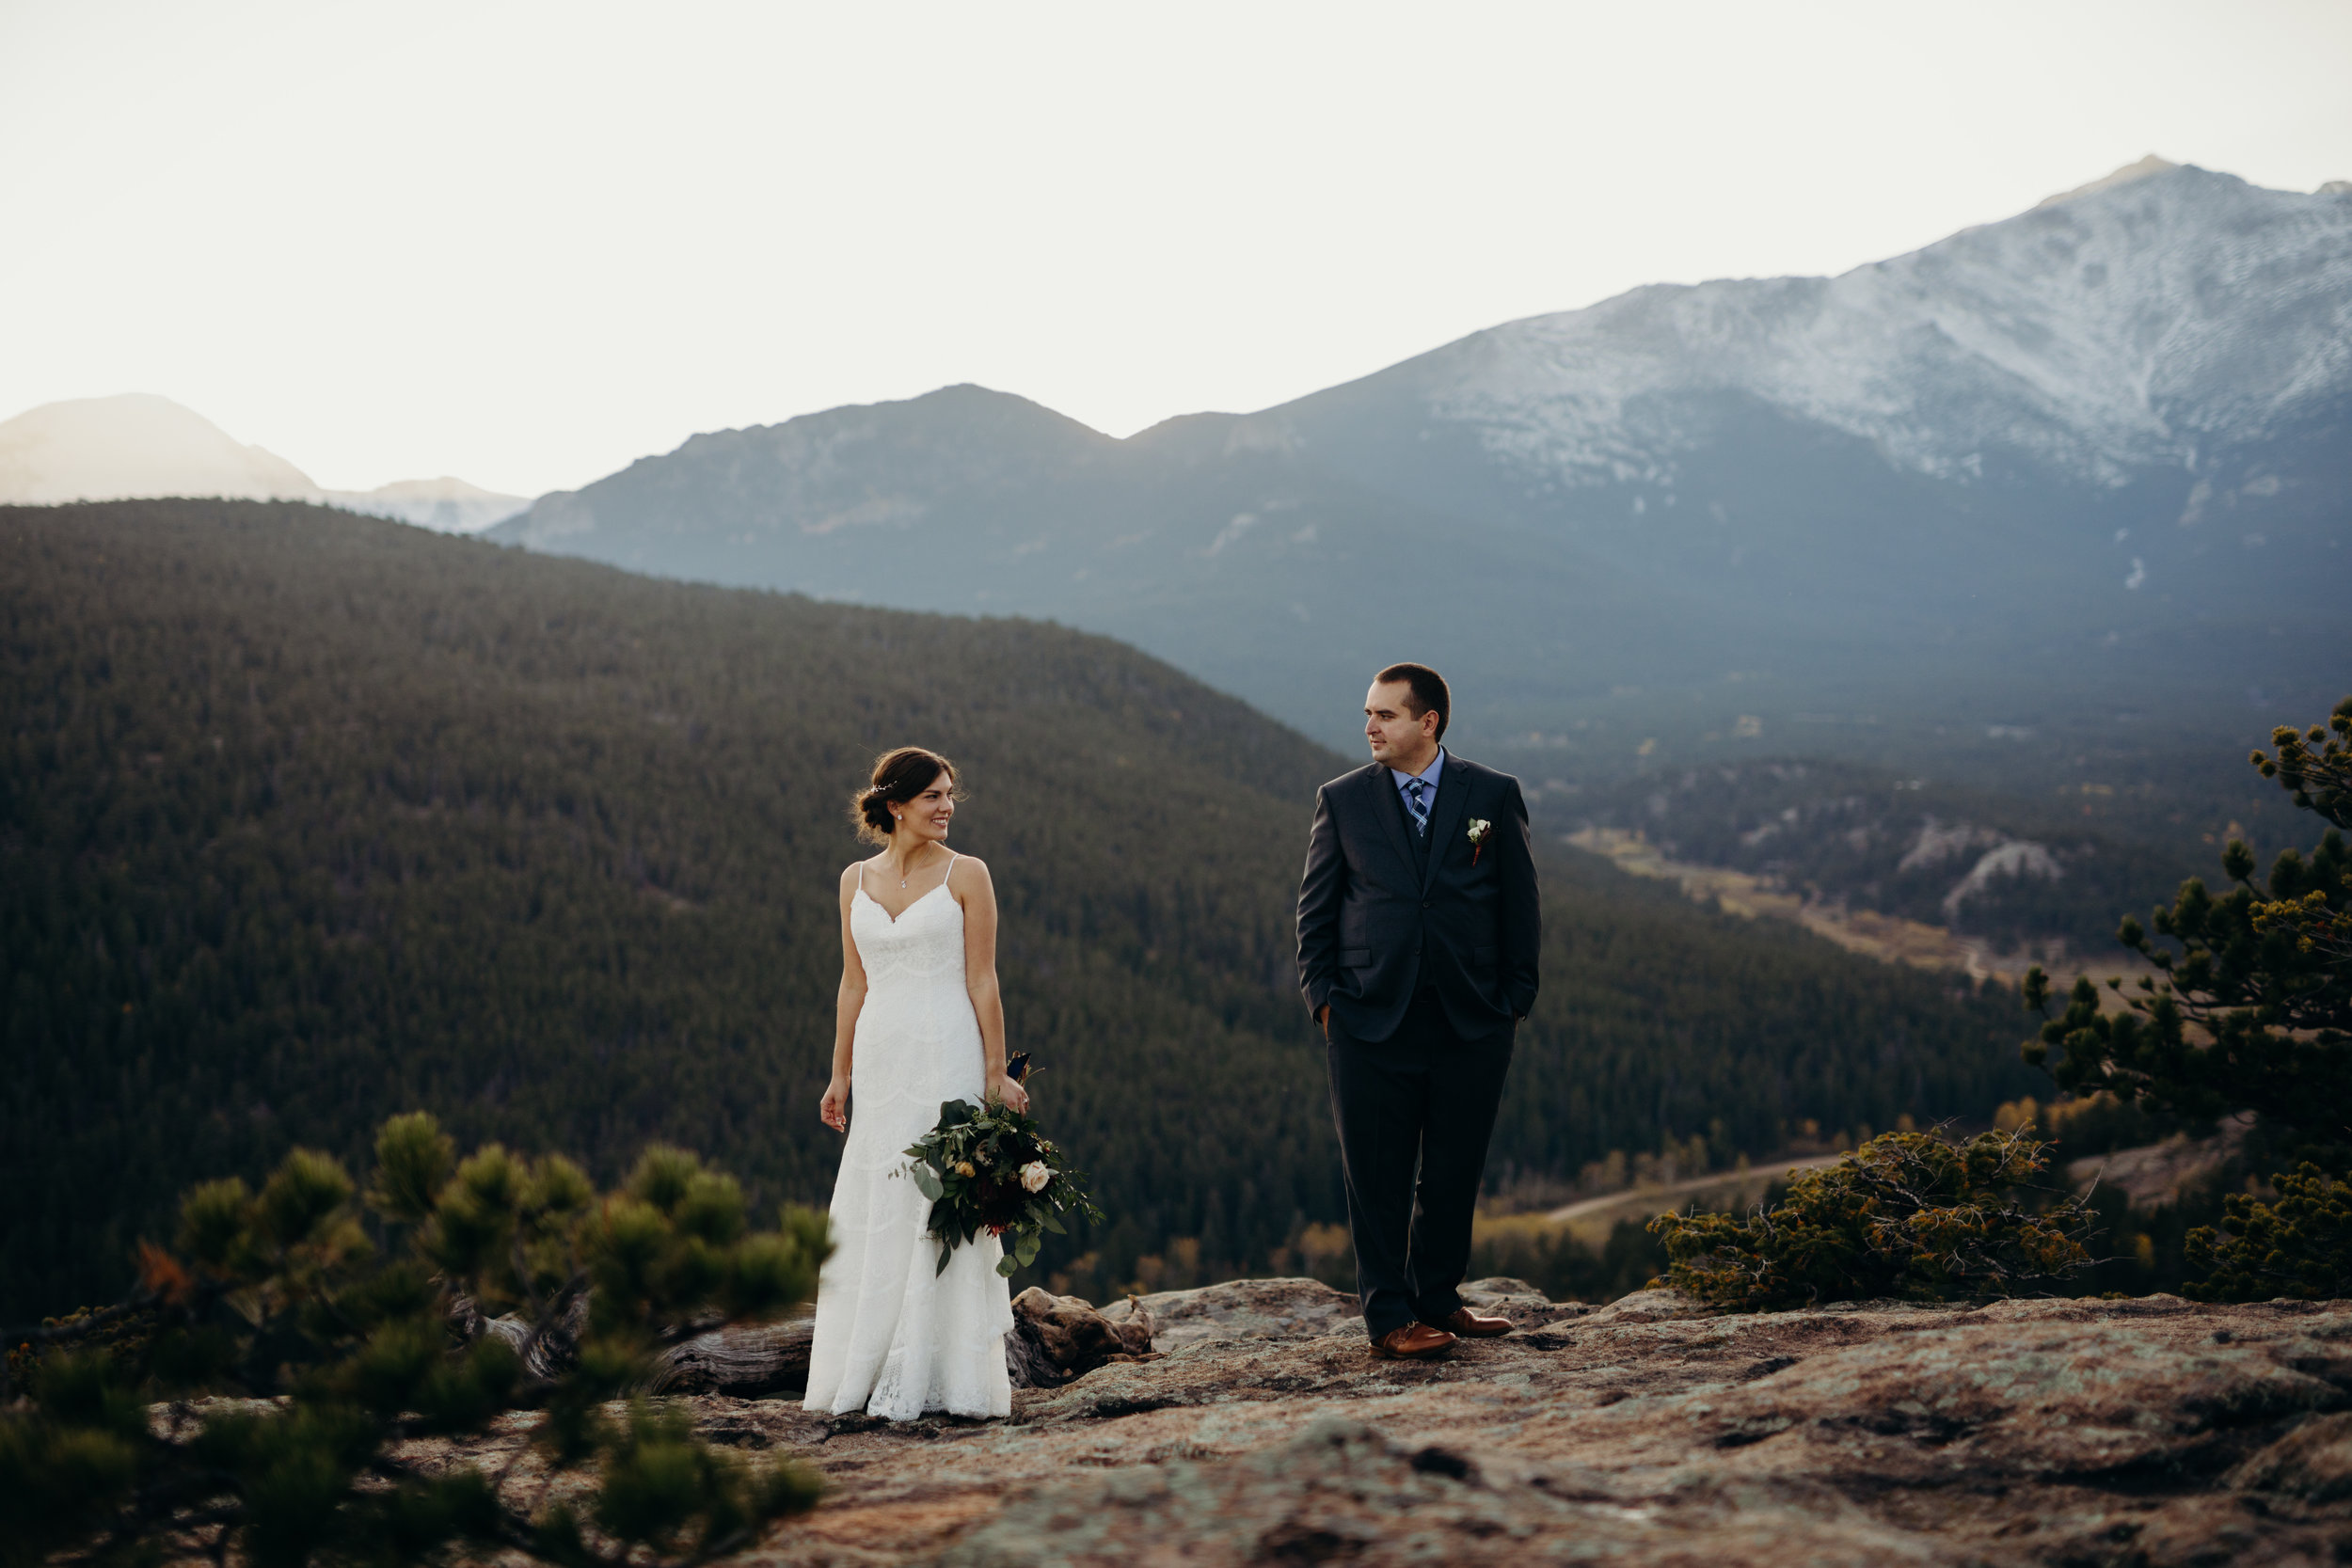 rockymountainelopement.jpg